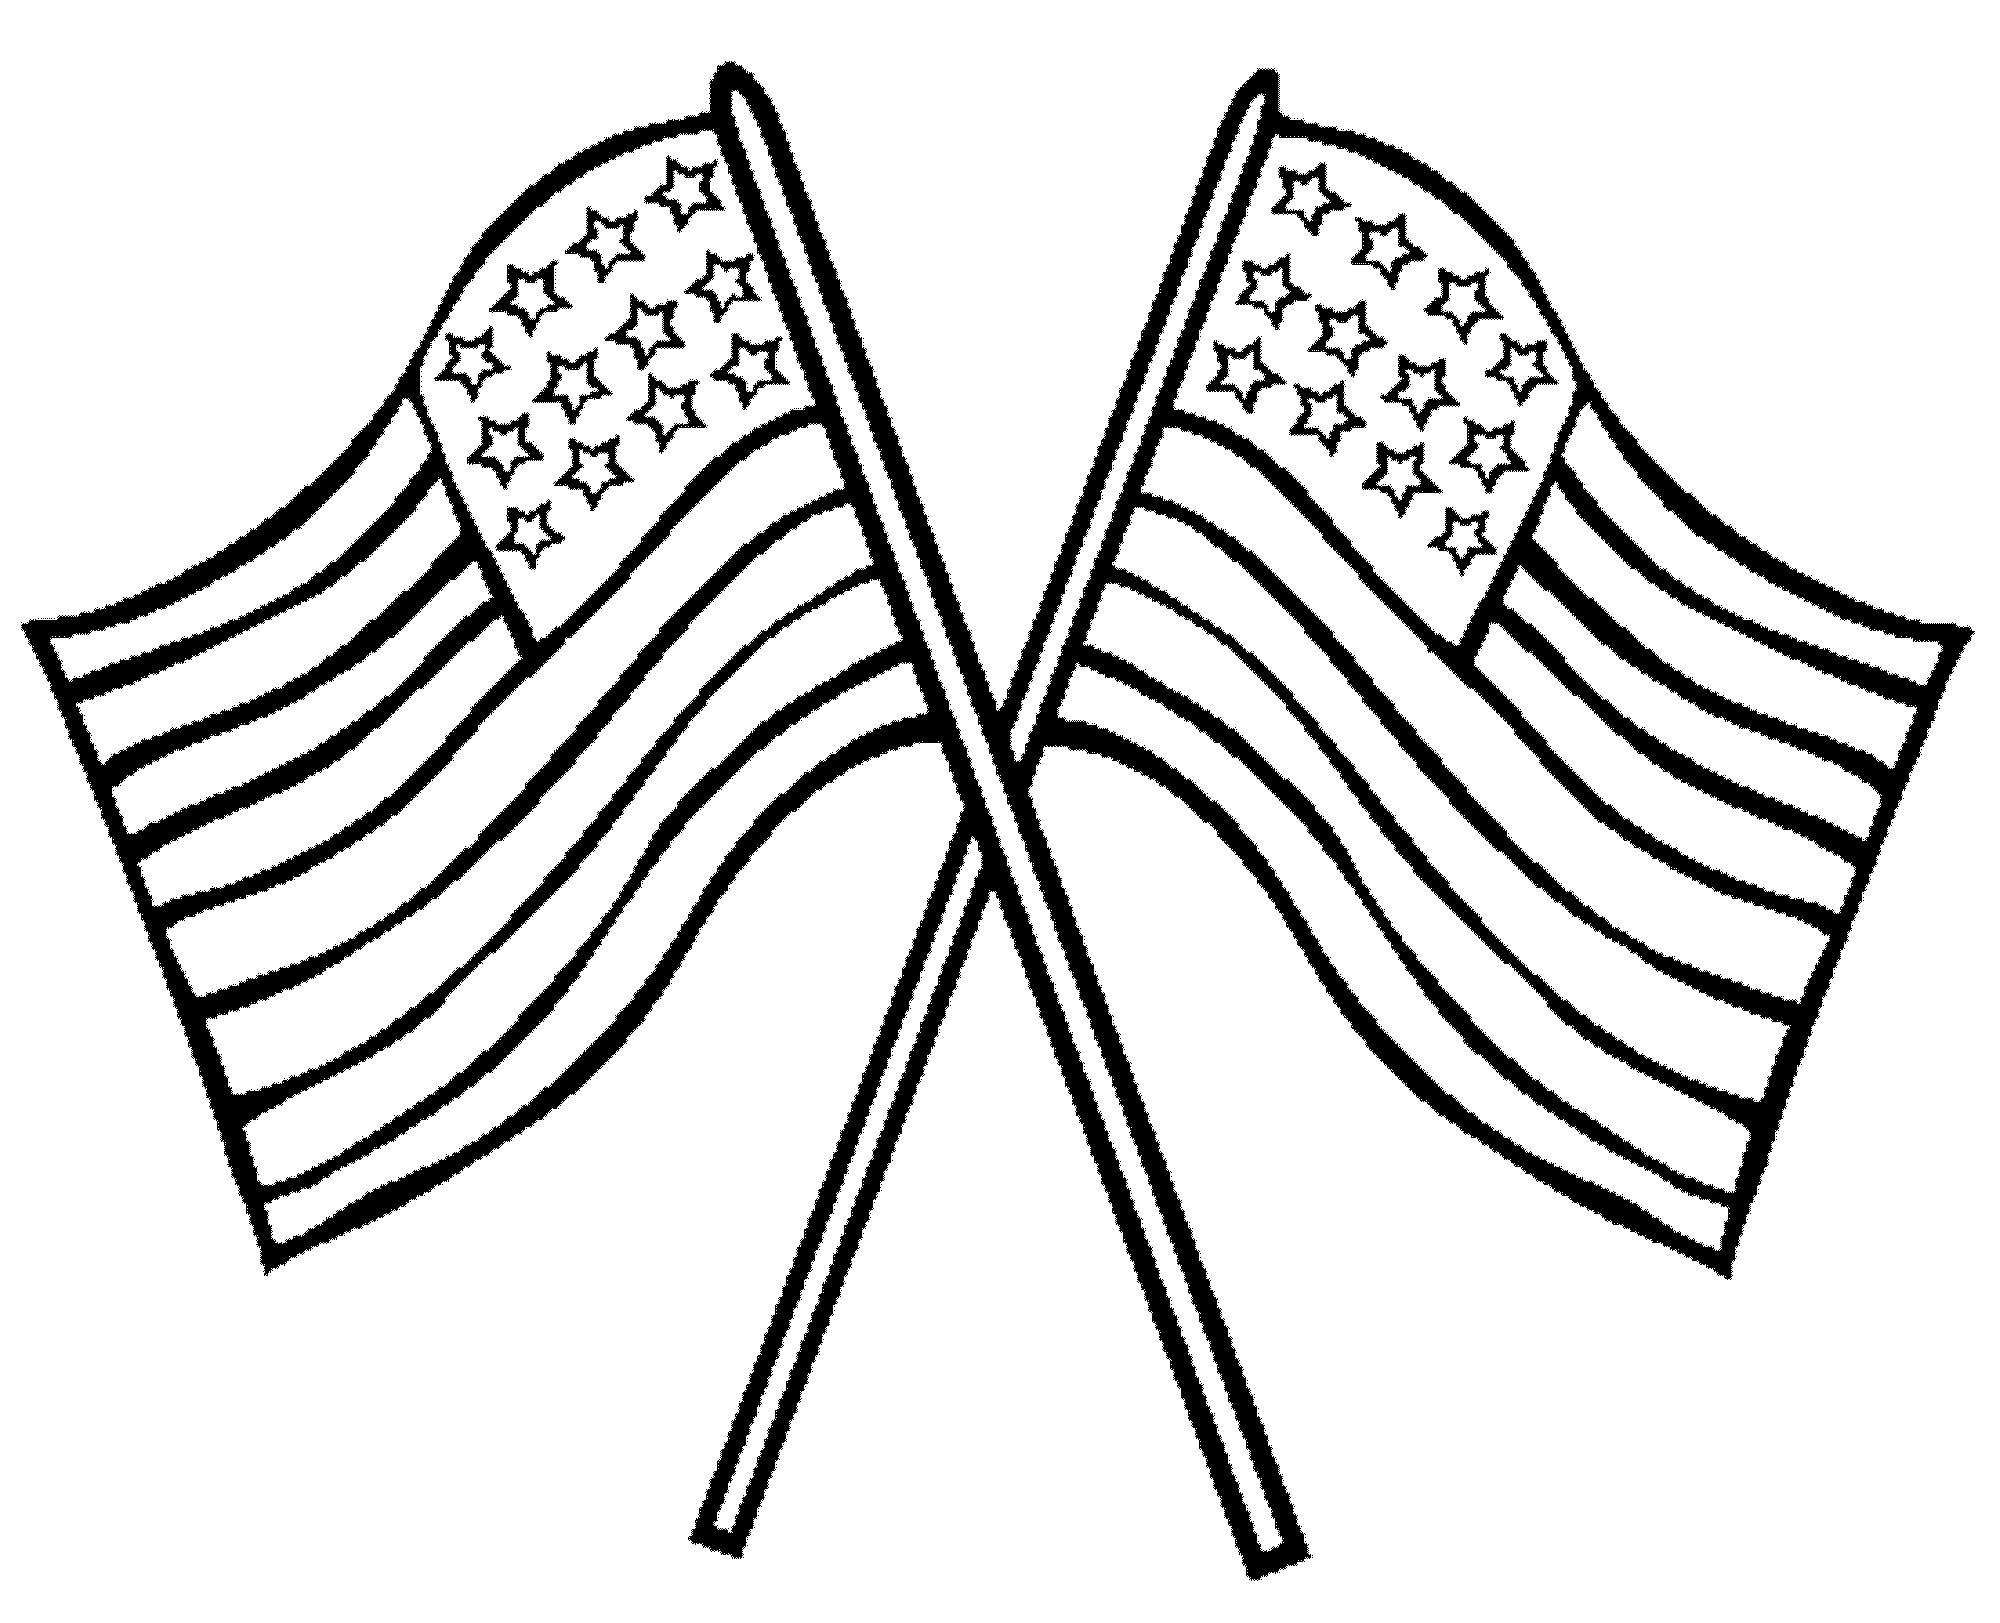 puerto rico flag to color puerto rican flag drawing at getdrawings free download to rico color puerto flag